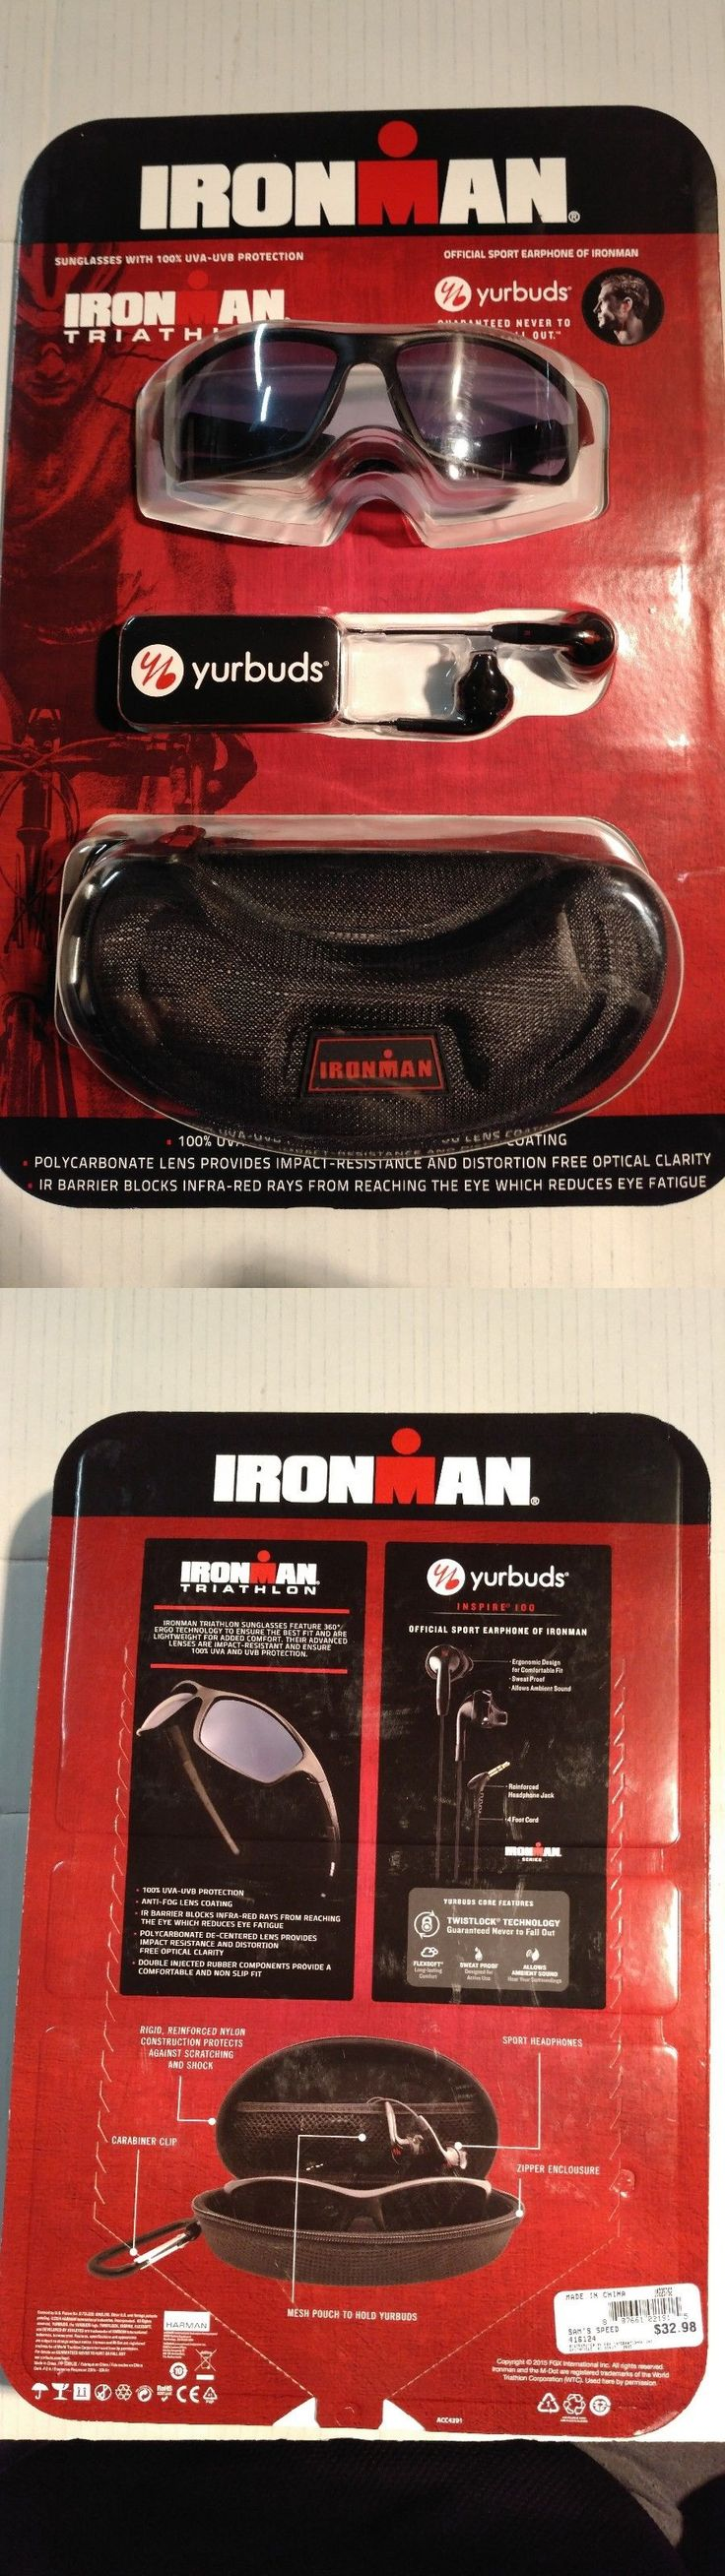 Sunglasses 151571: New!!! Ironman Triathlon Sunglasses/Yurbuds Earphones Bundle BUY IT NOW ONLY: $44.95